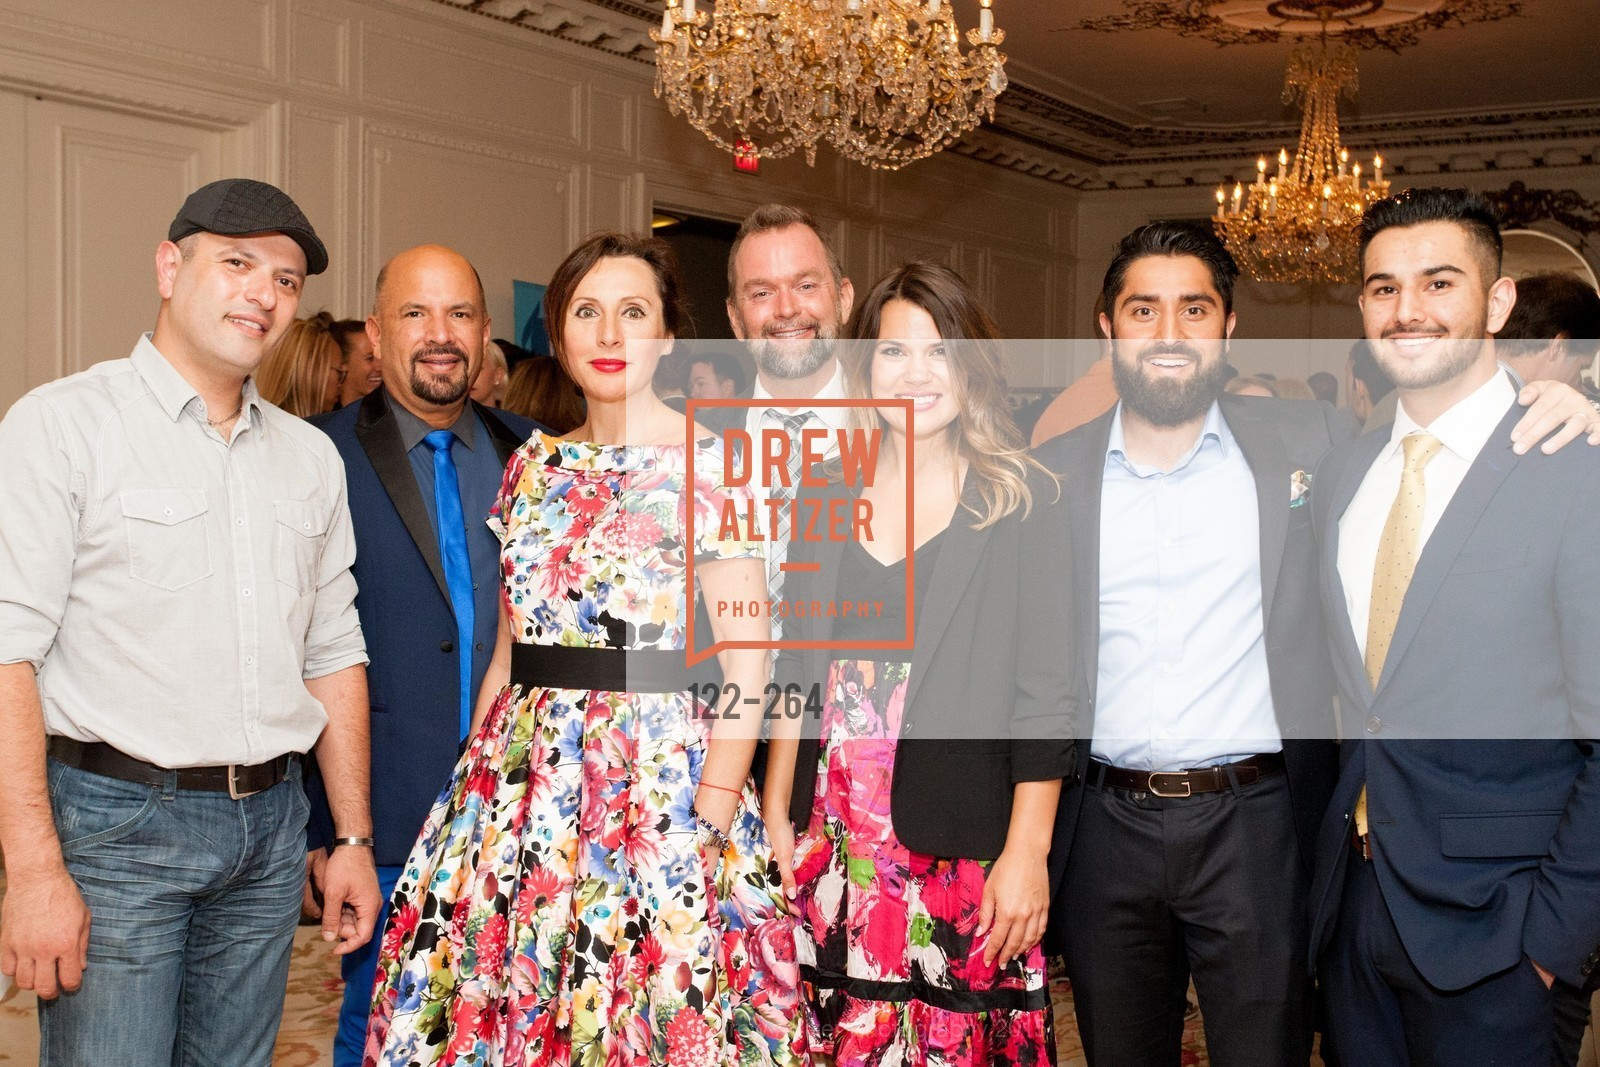 David Kassouf, Ted Hannig, Clara Shayevich, Mike Hickey, Melody Bartholomew, Roh Habibi, Obeid Habibi, Shanti's Compassion is Universal 41st Anniversary Preview Reception, Palace Hotel. 2 Montgomery Street, August 25th, 2015,Drew Altizer, Drew Altizer Photography, full-service agency, private events, San Francisco photographer, photographer california